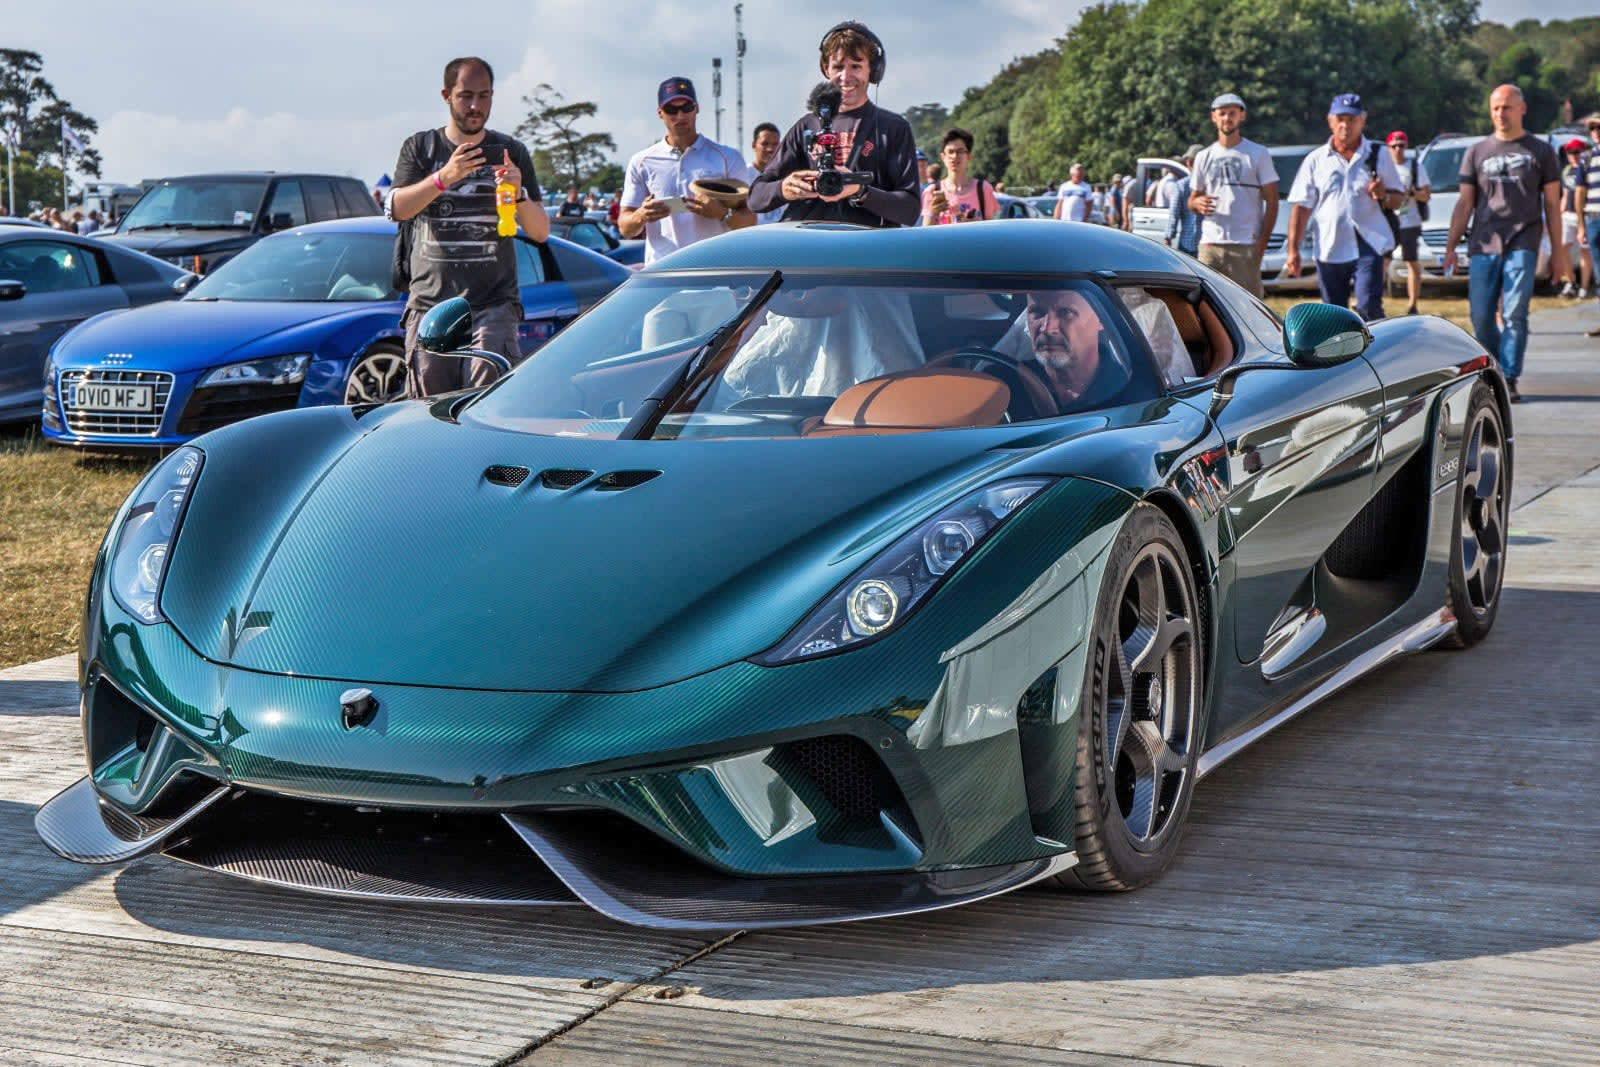 Koenigsegg aims to build a 'CO2 neutral' combustion supercar